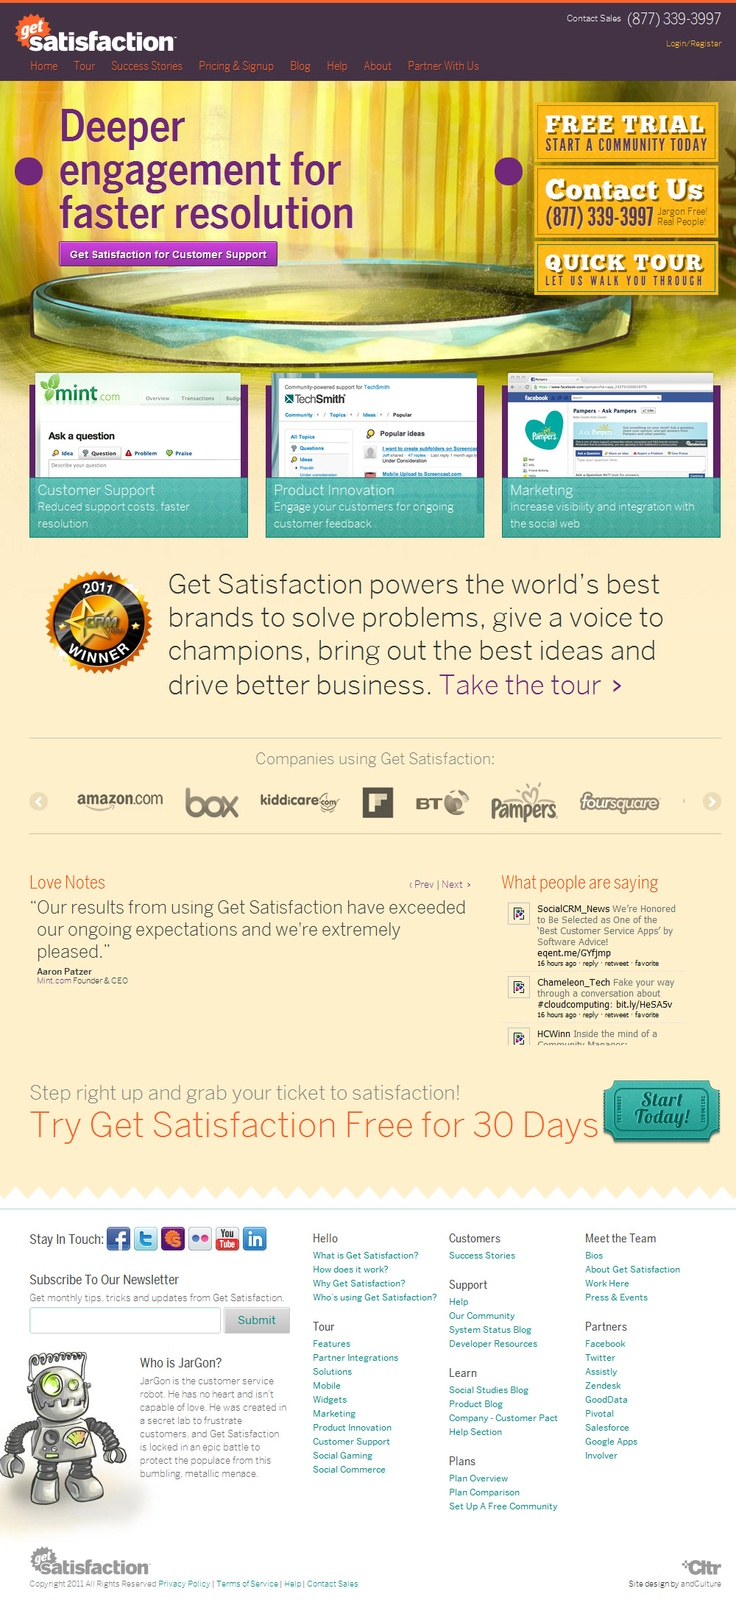 Get Satisfaction, 29th March 2012